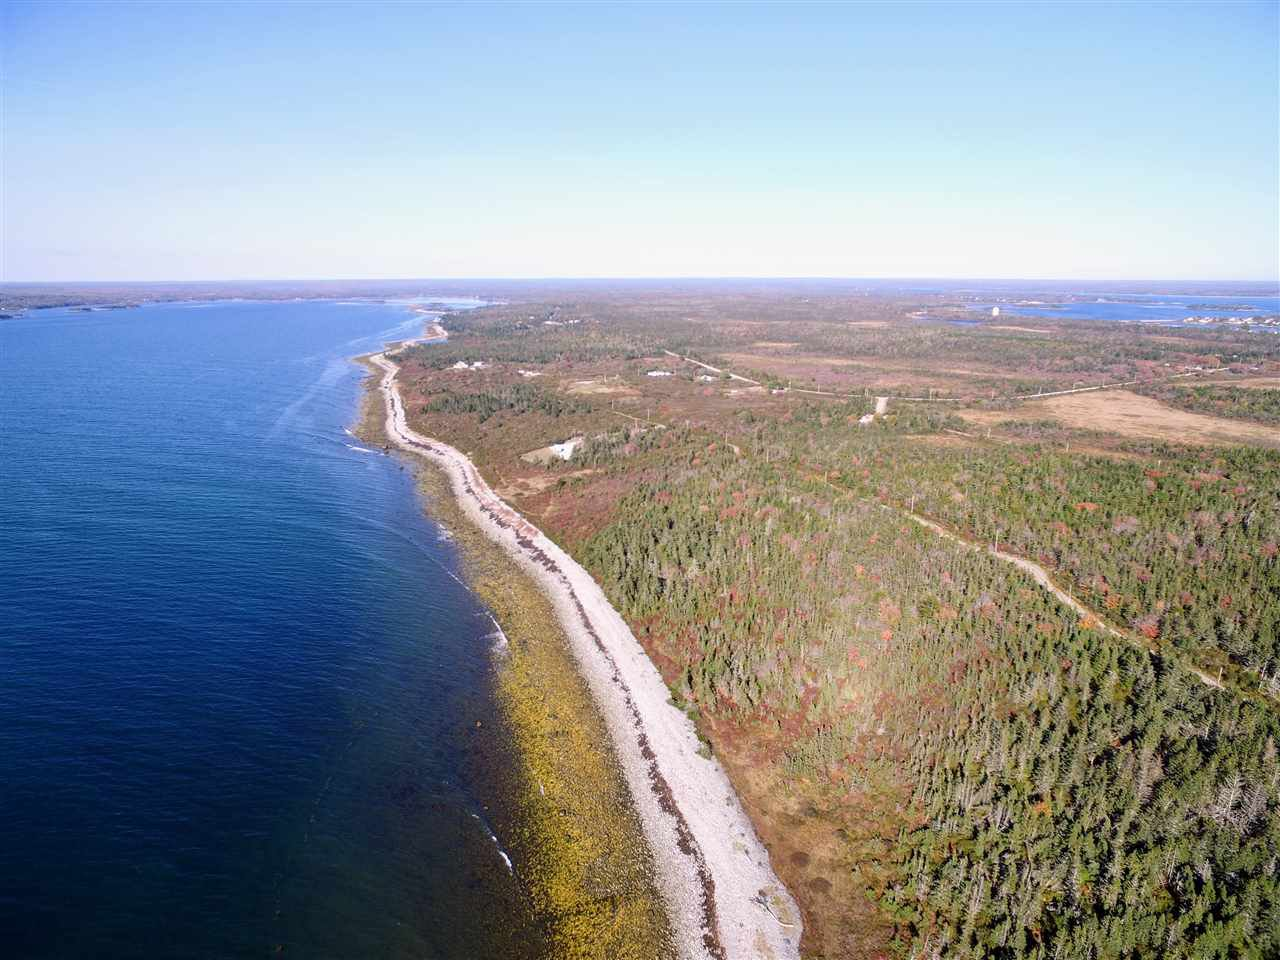 Main Photo: Lot 10 Youngs Road in East Green Harbour: 407-Shelburne County Vacant Land for sale (South Shore)  : MLS®# 202022911